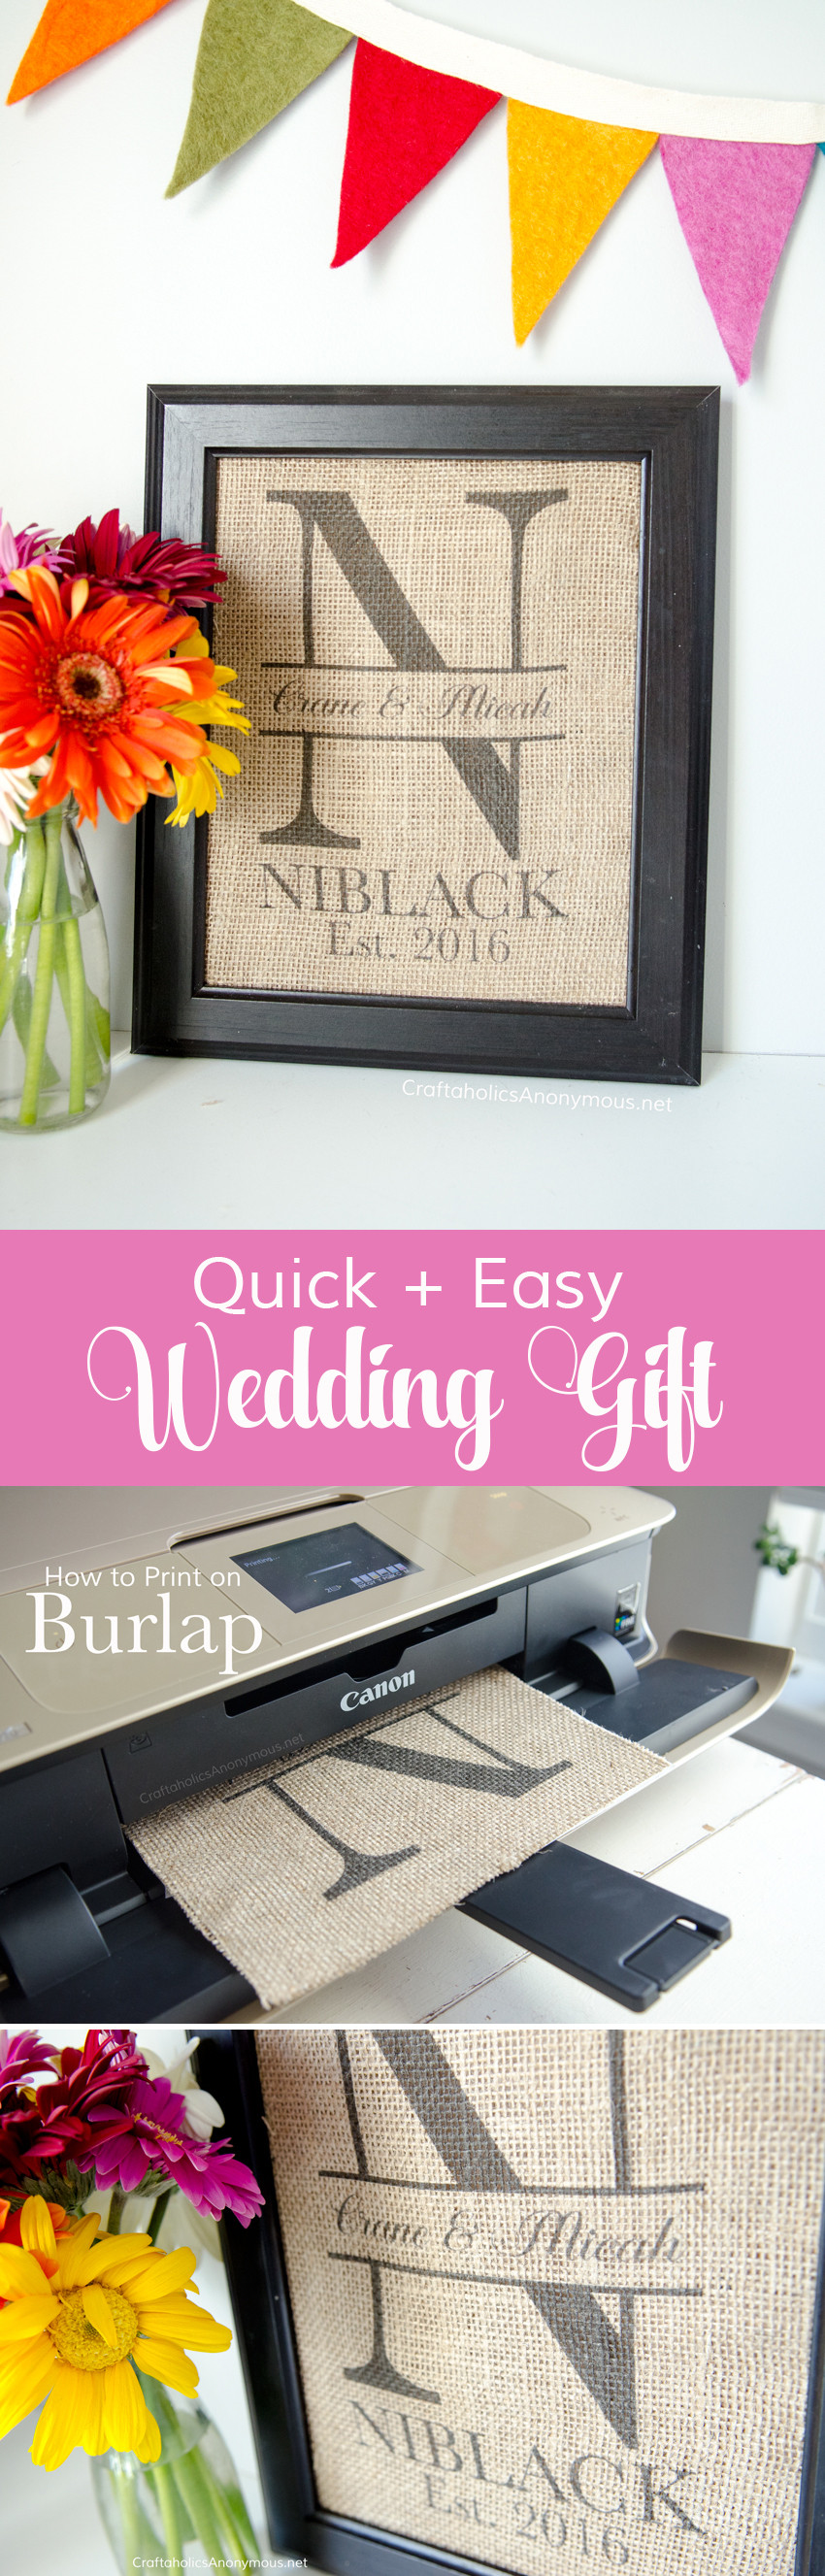 Best ideas about DIY Wedding Gift . Save or Pin Craftaholics Anonymous Now.